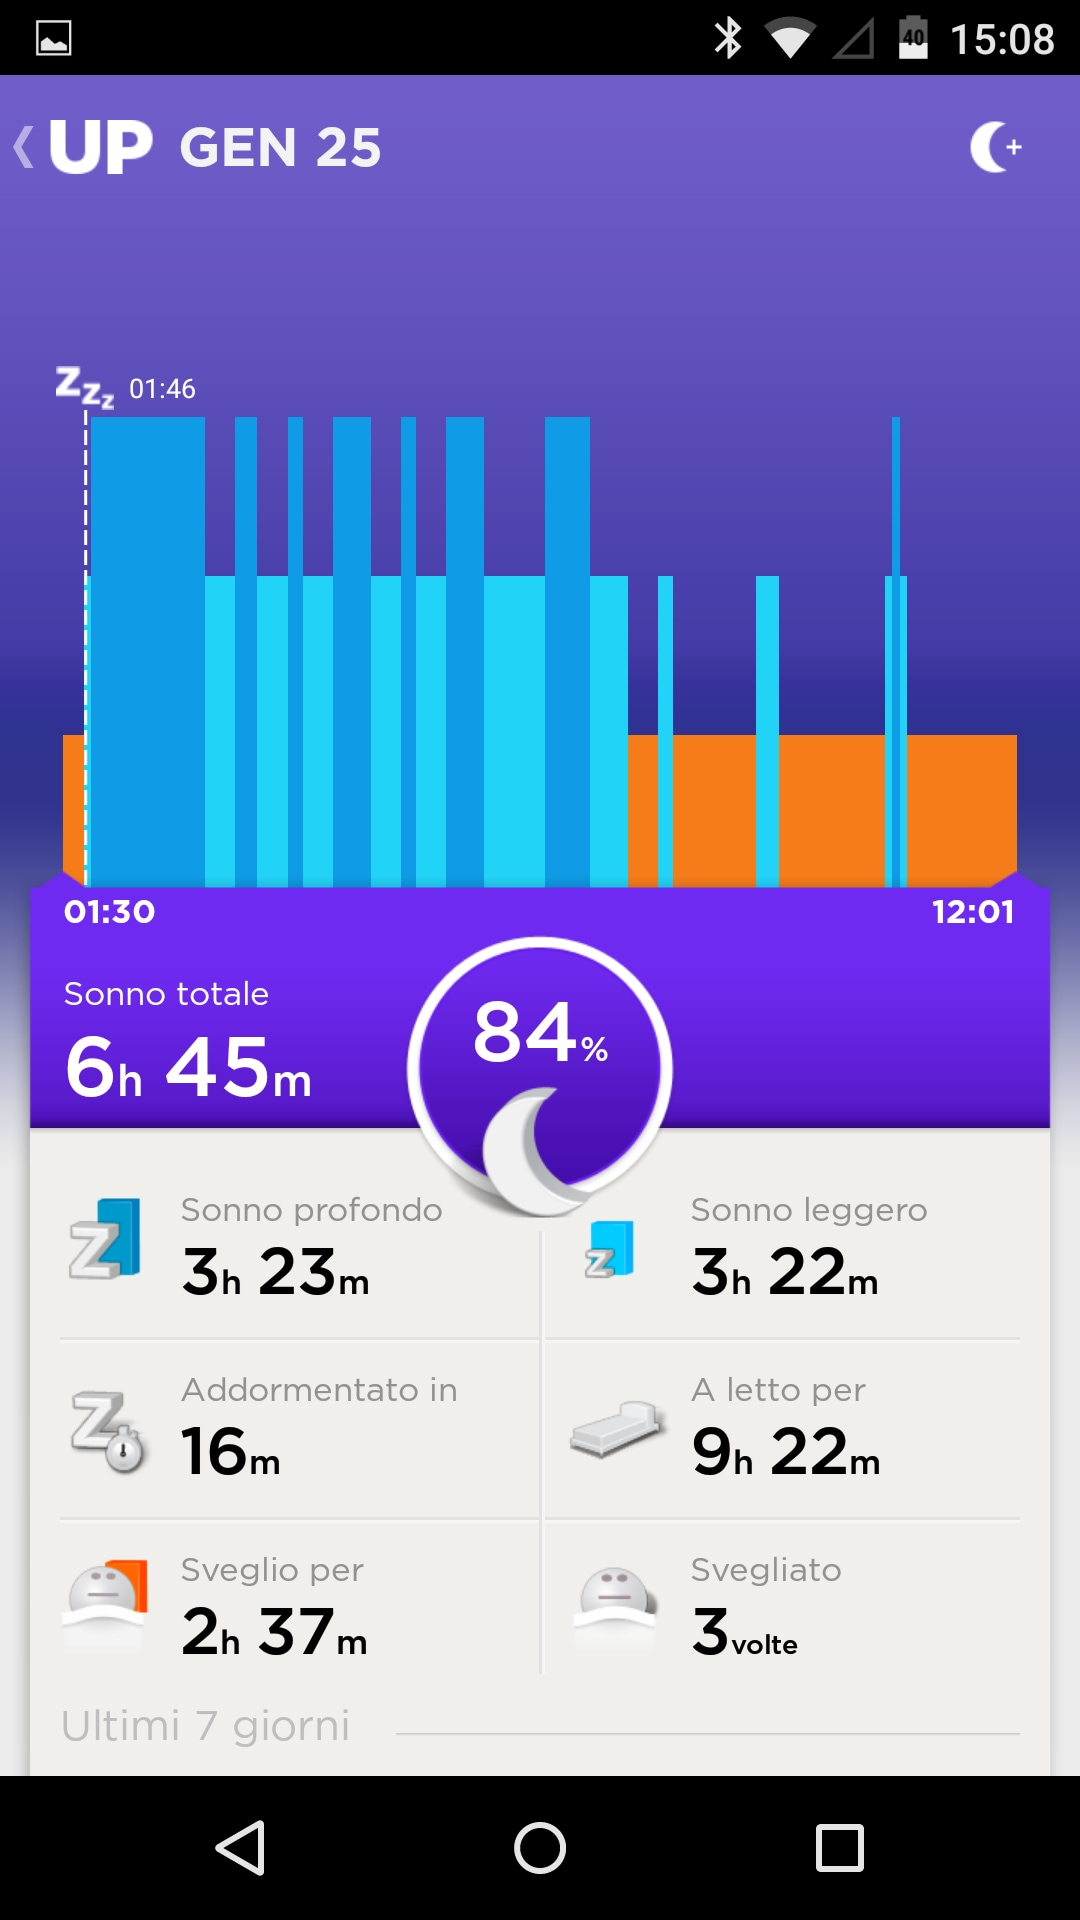 Jawbone UP Android App – 3